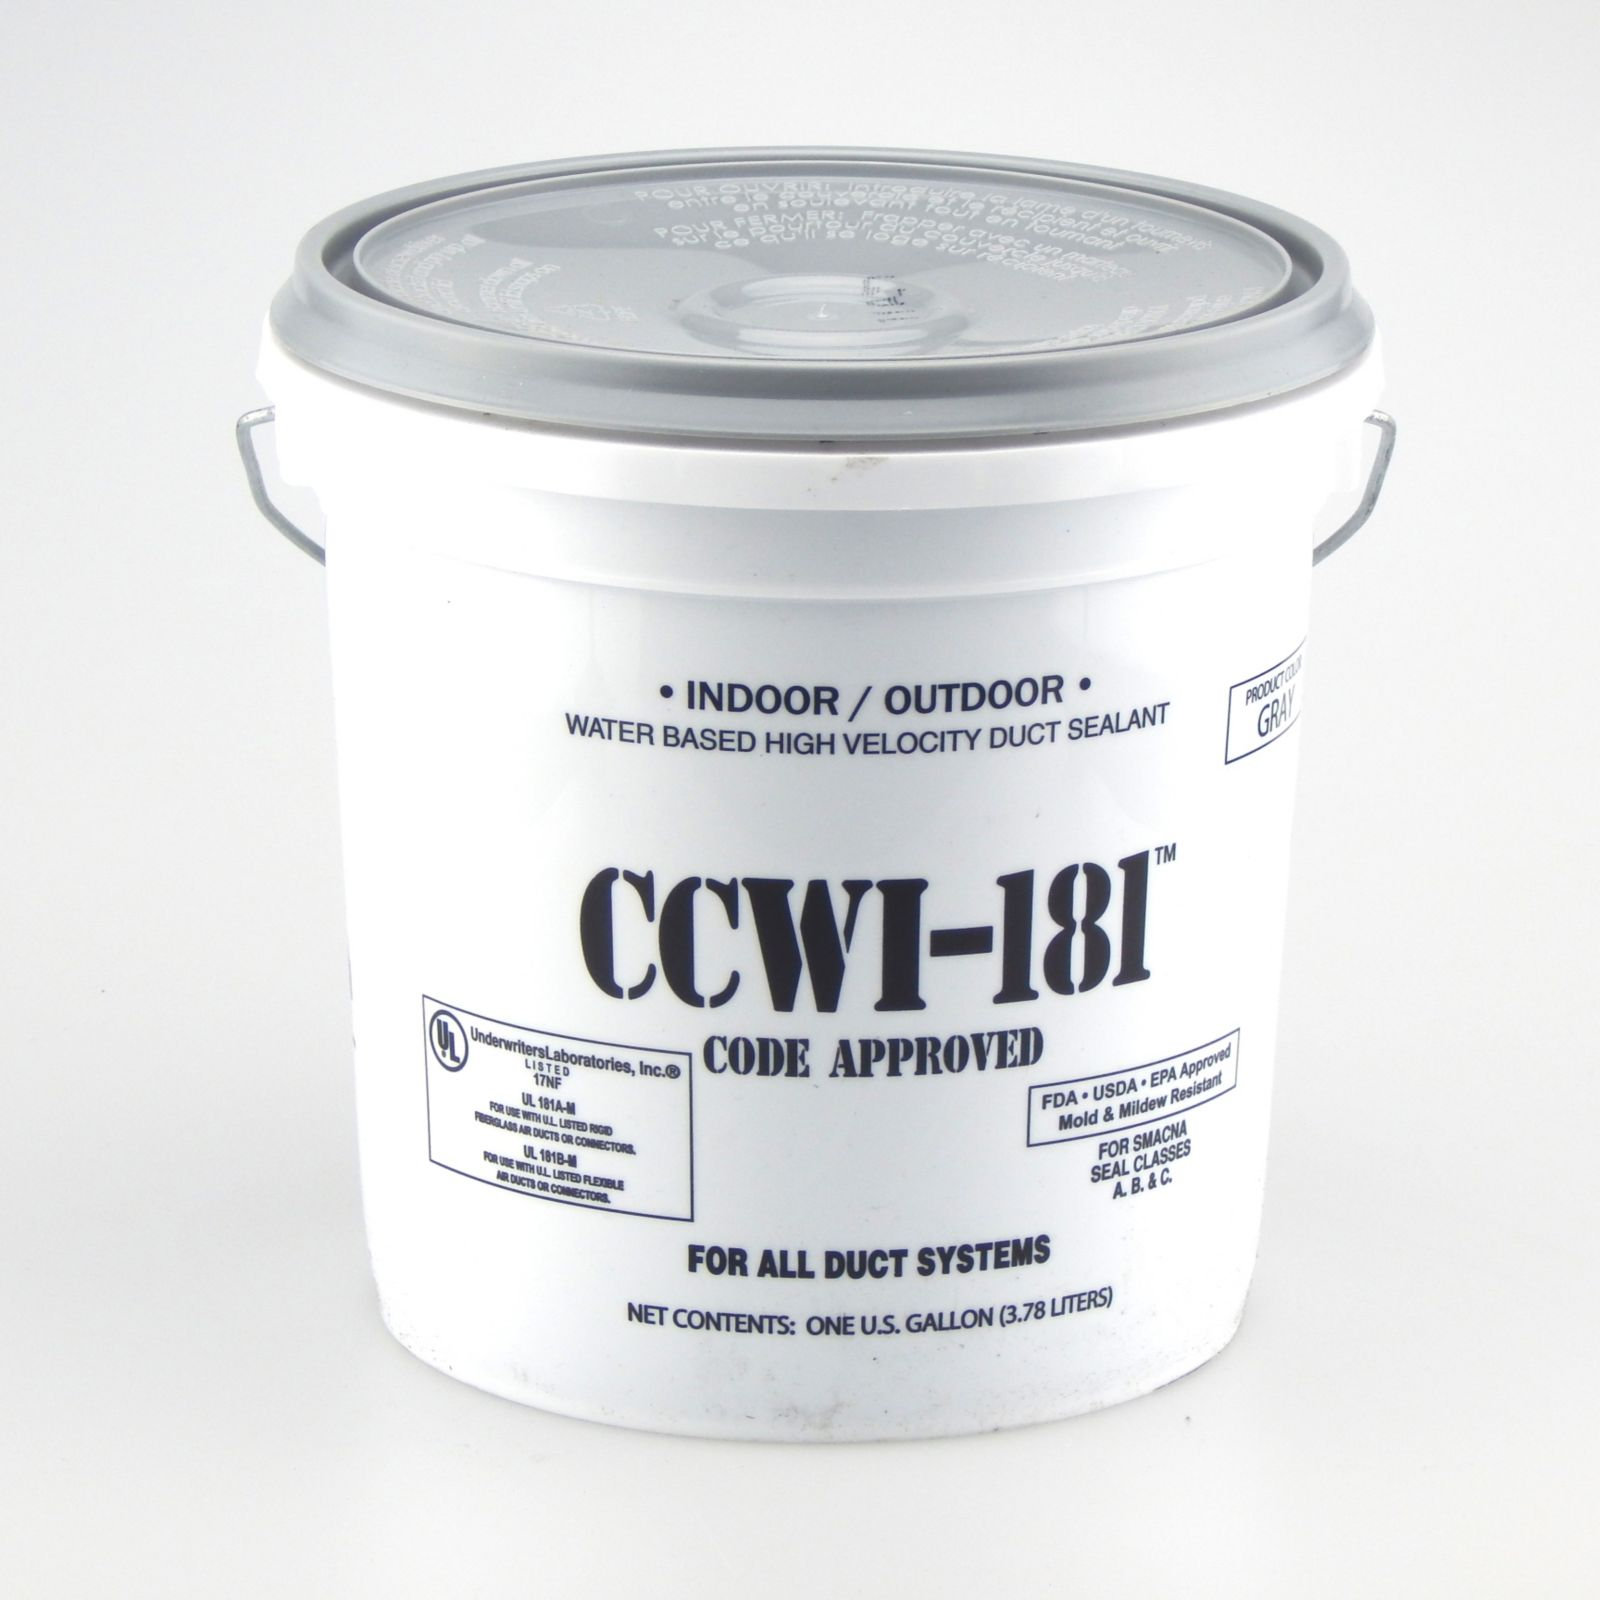 Hardcast/Carlisle 304148 - CCWI-181 Indoor/Outdoor Water Based Duct Sealant Grey, 1 Gallon